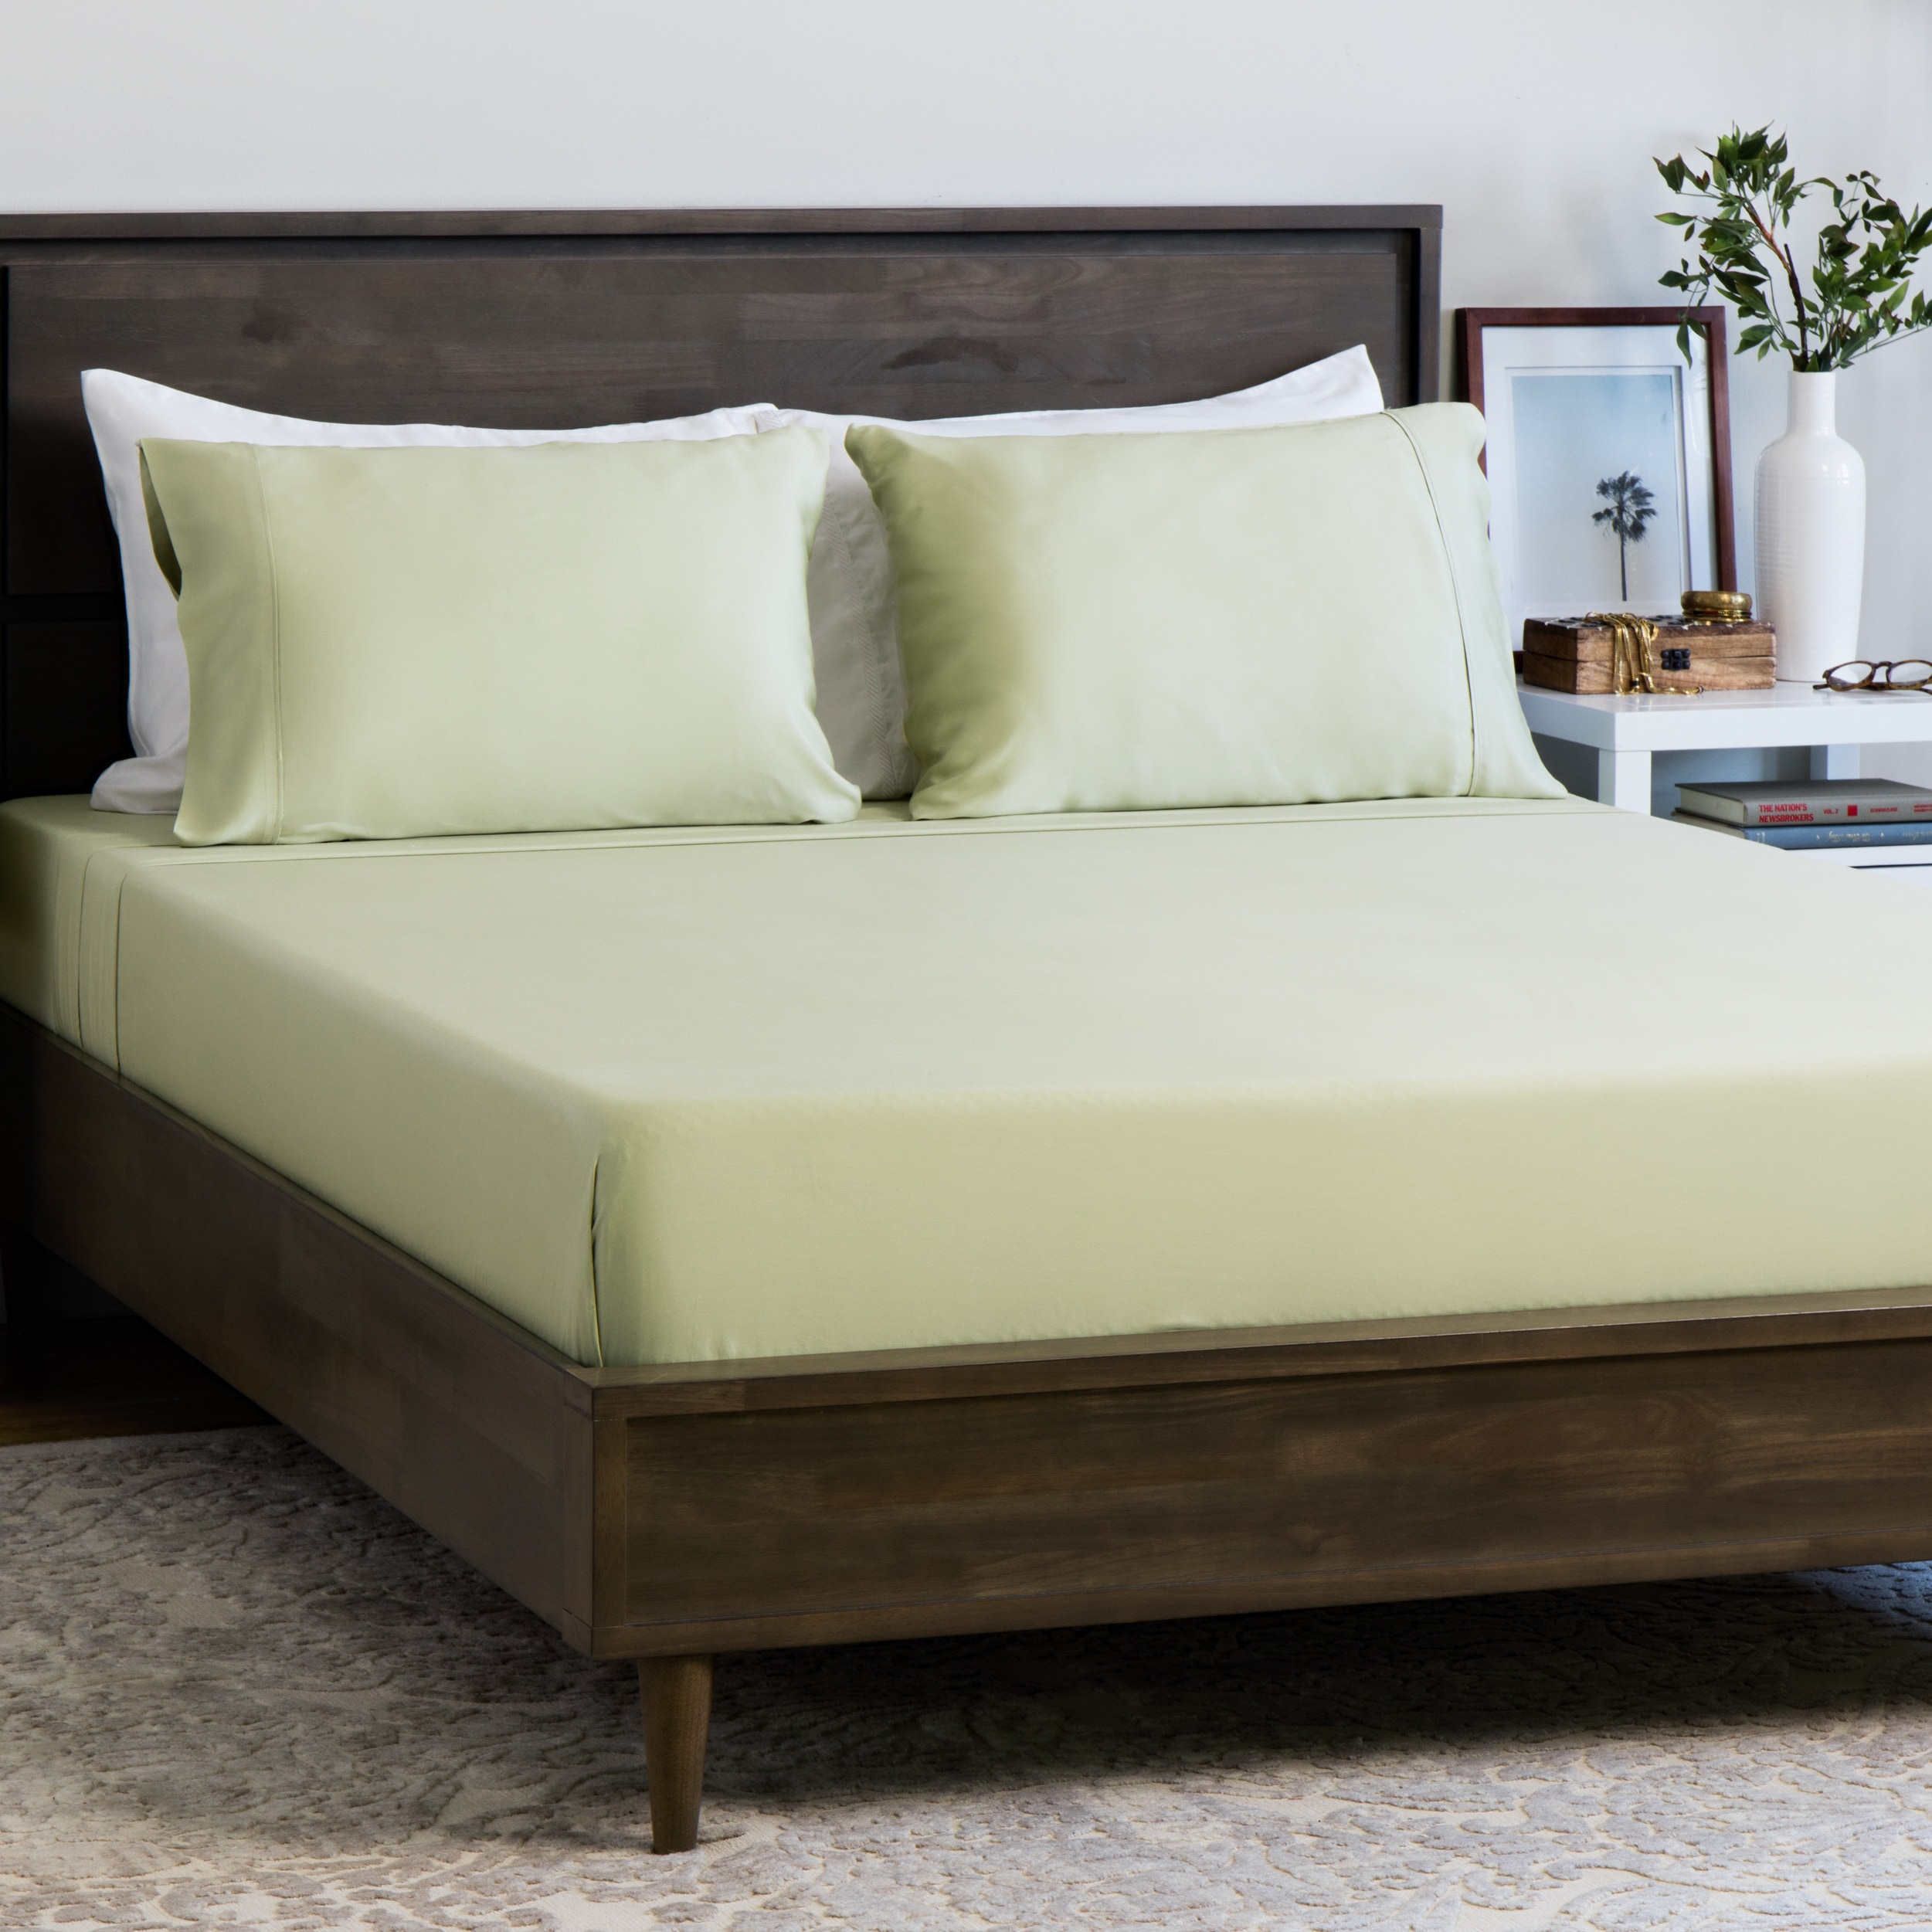 ever night giveaway sheets cariloha picmonkey covers bed sleep bamboo best duvet